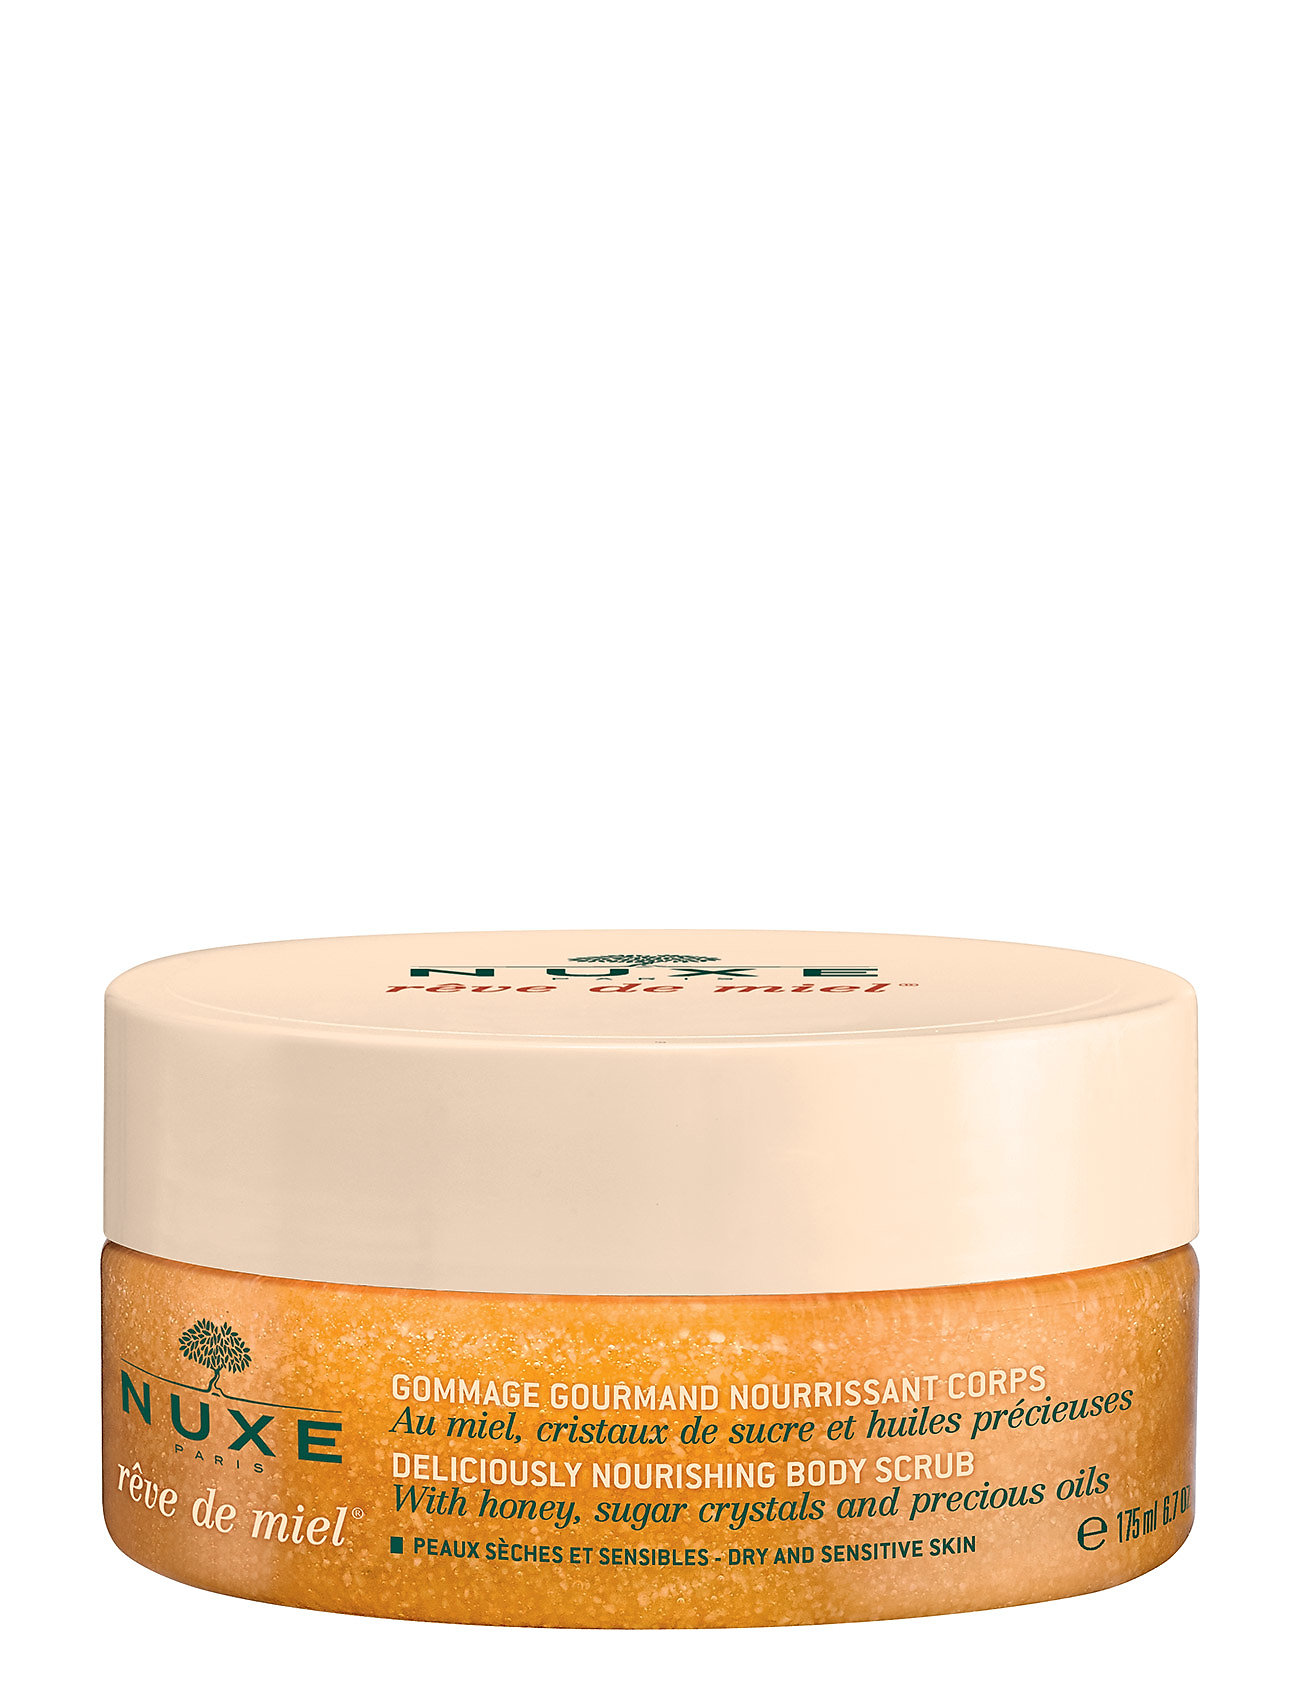 NUXE Rêve de miel Bodyscrub 175 ml - CLEAR